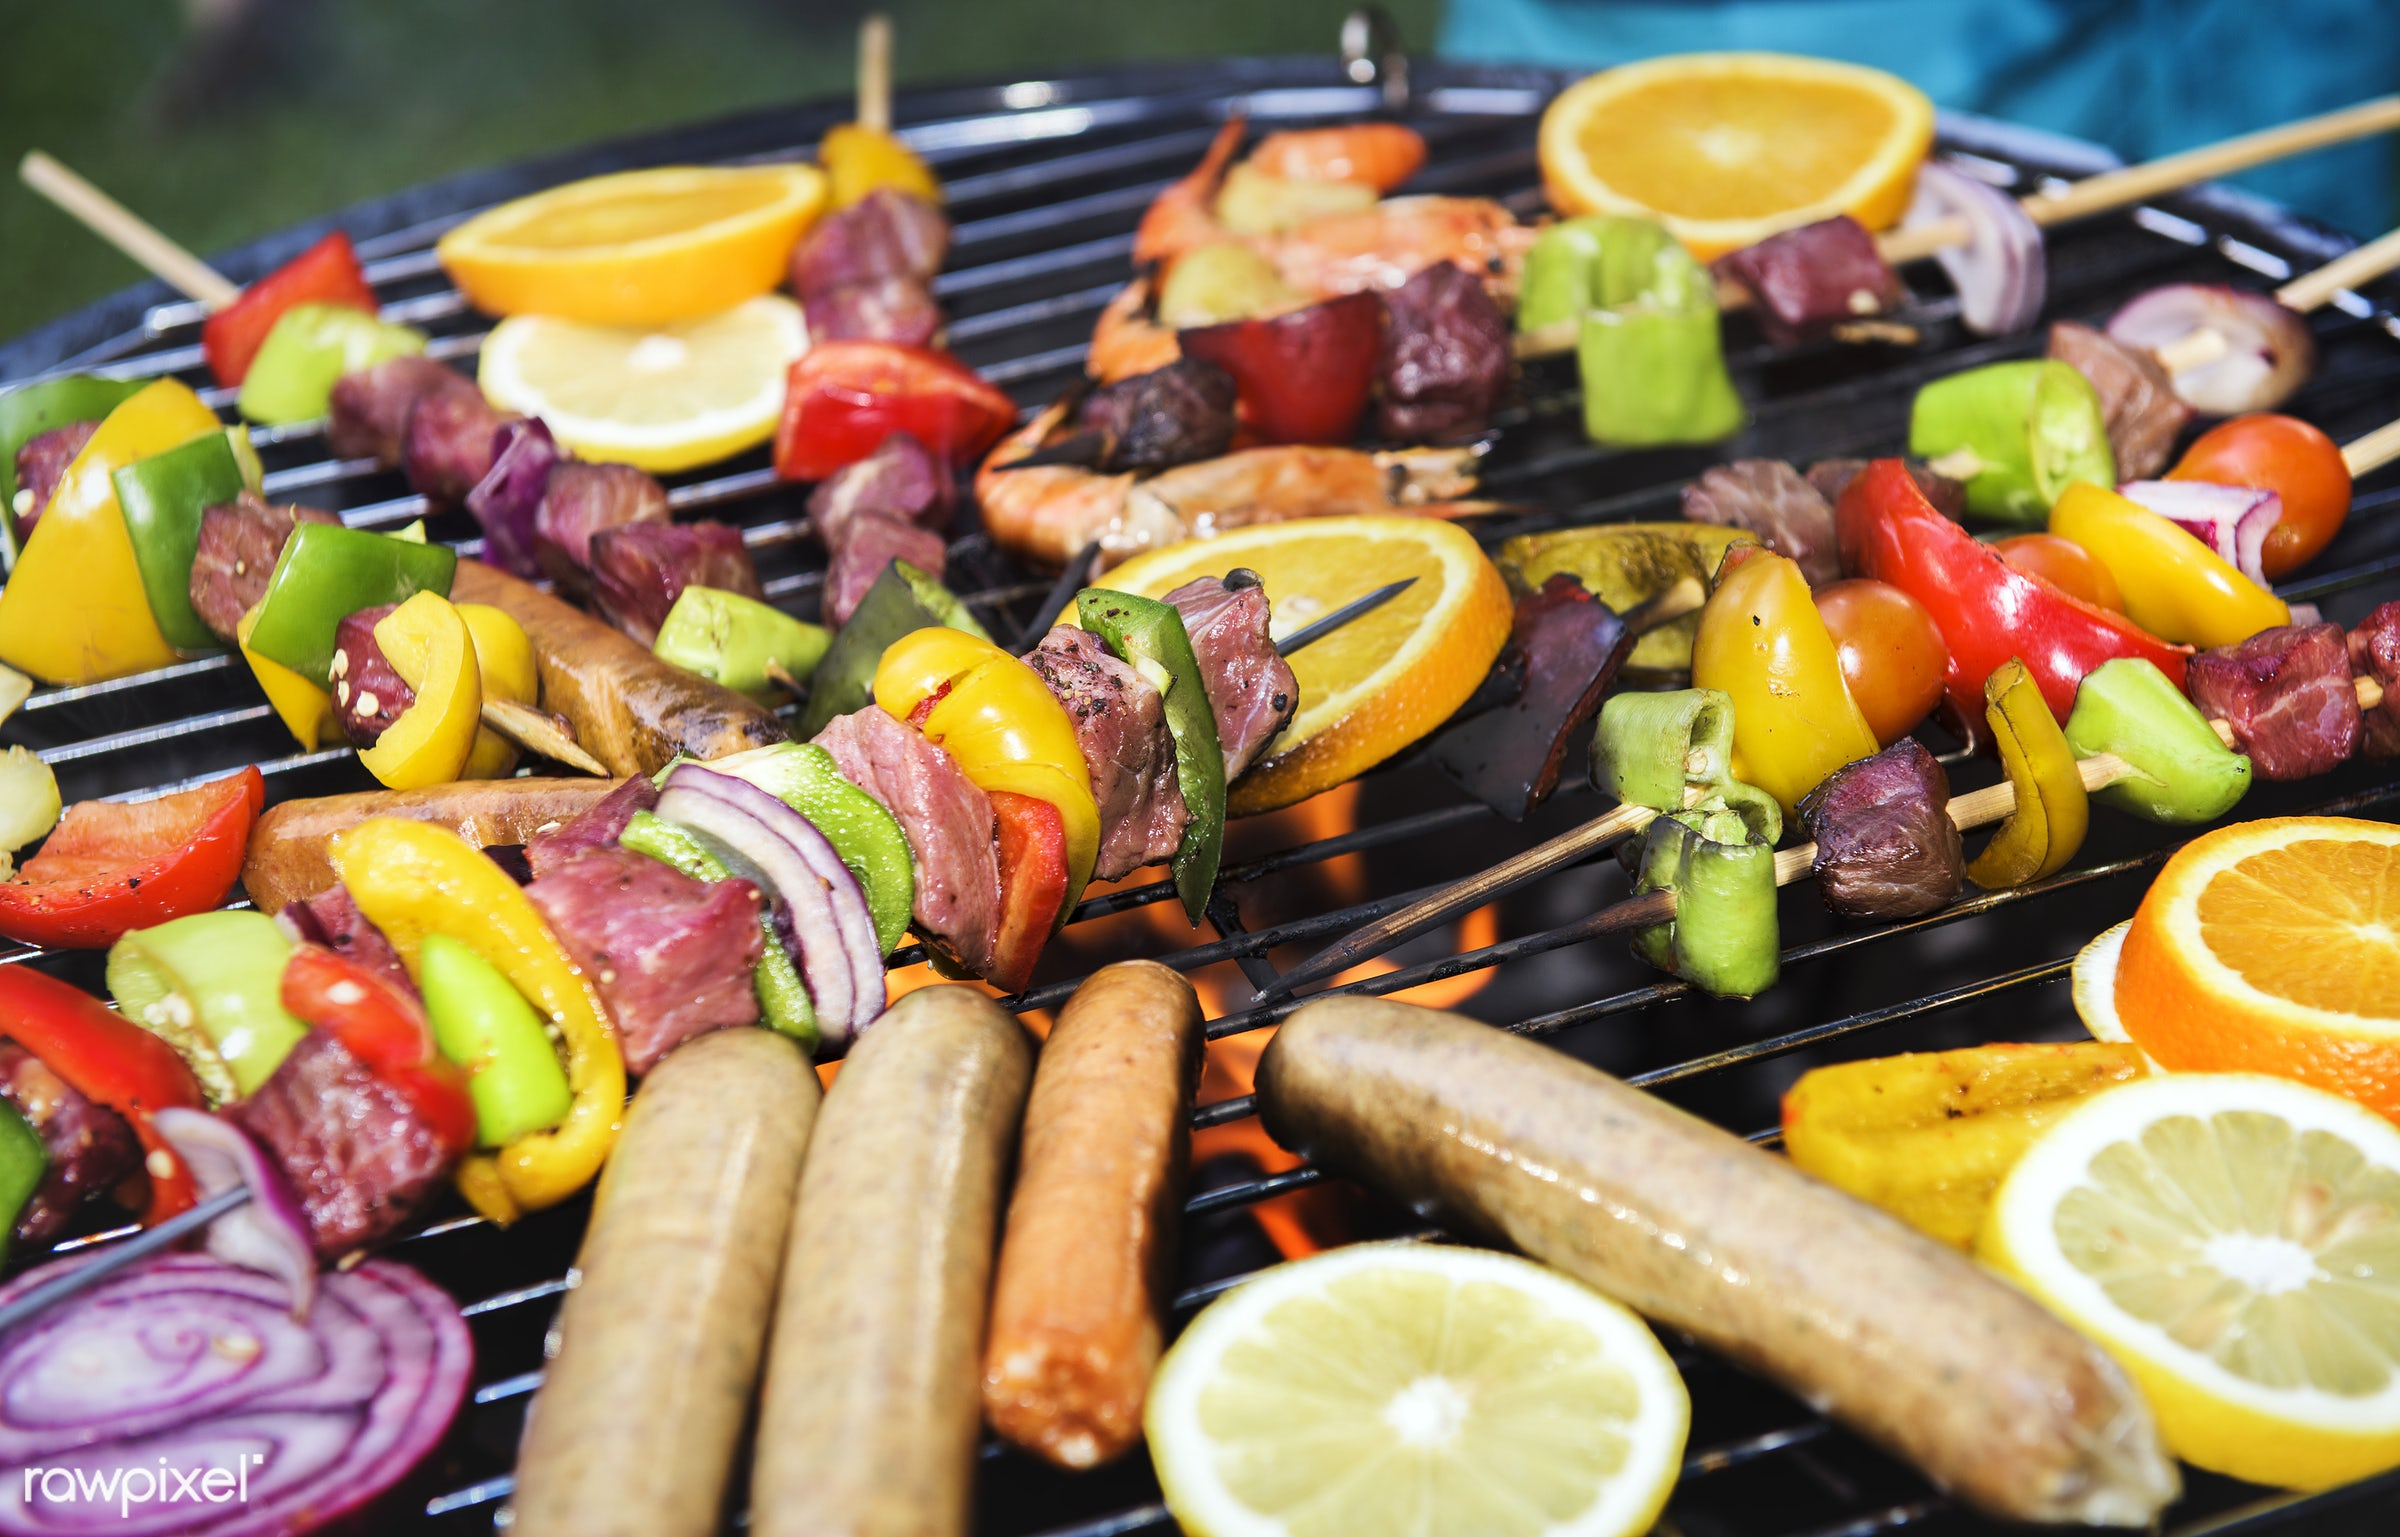 bbq, barbecue, charcoals, closeup, cook, cooking, cookout, fire, food, grill, homemade, meal, meat, nobody, sausage, screen...